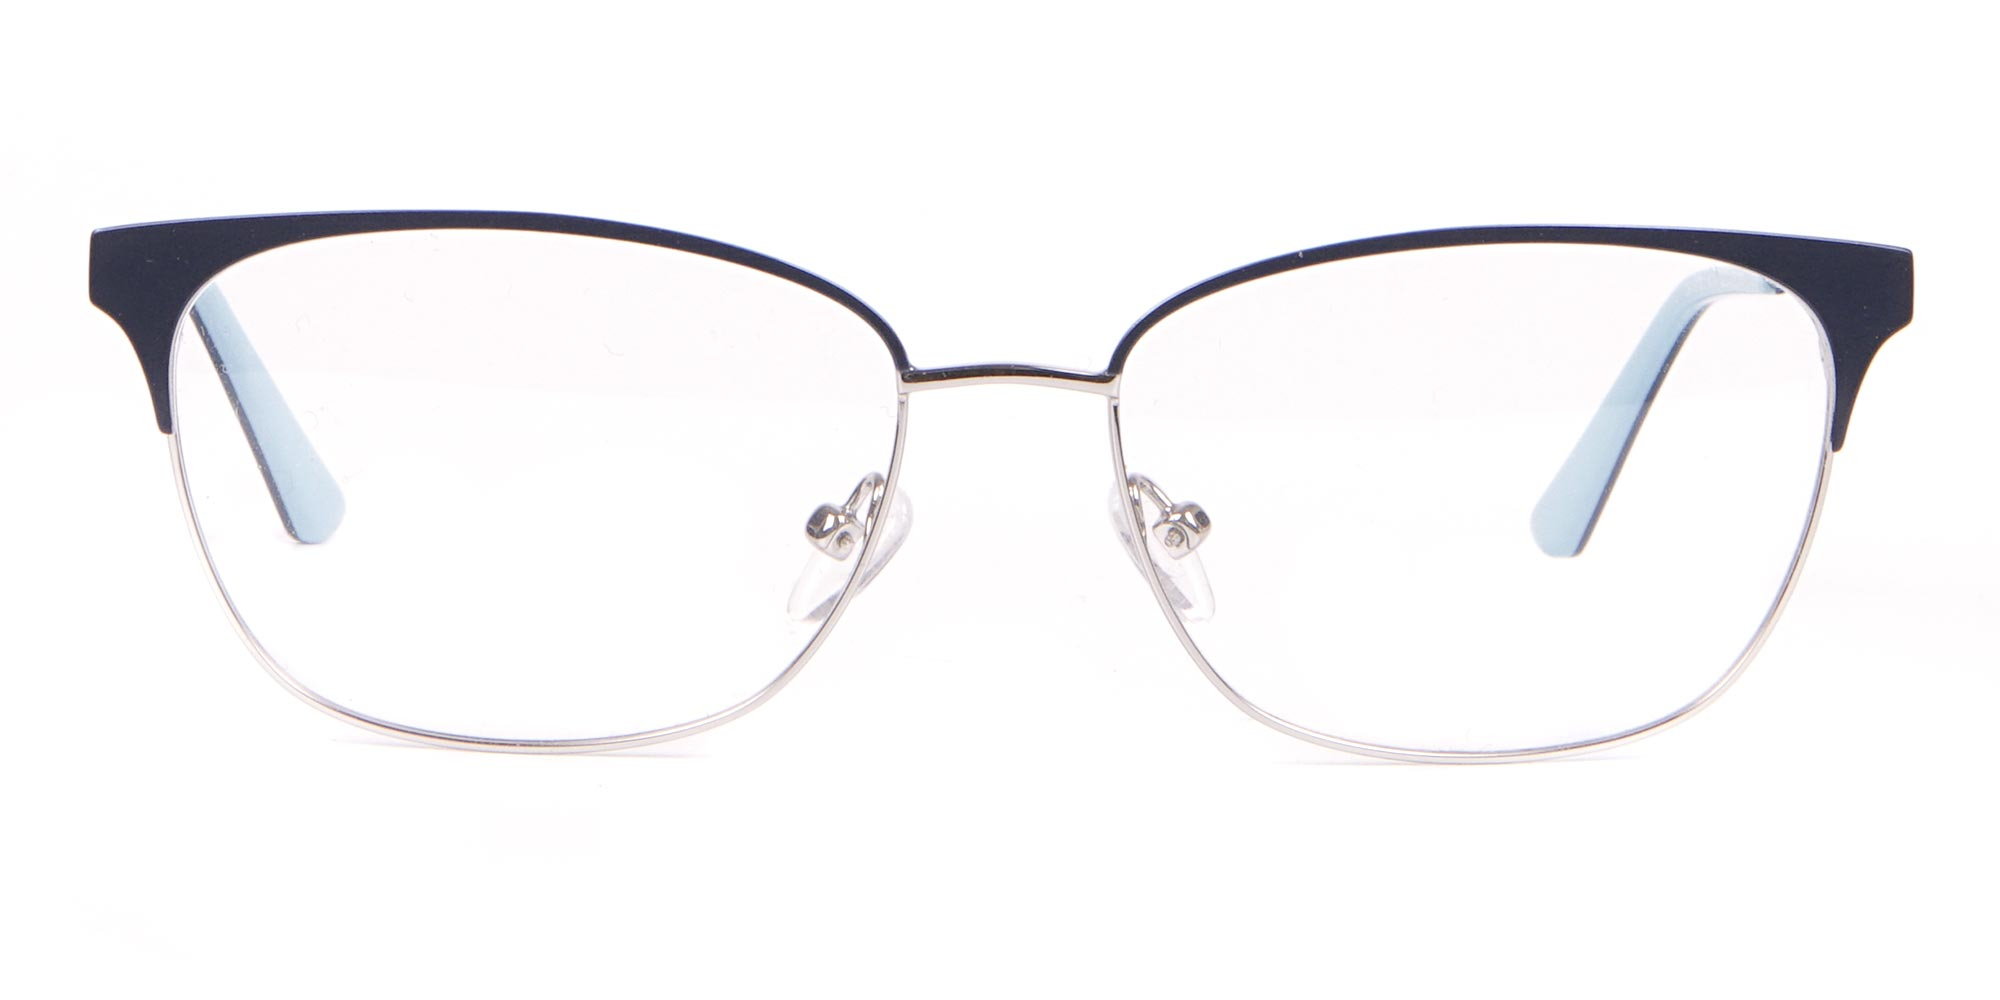 Calvin Klein Navy Blue Glasses for diamond face shape